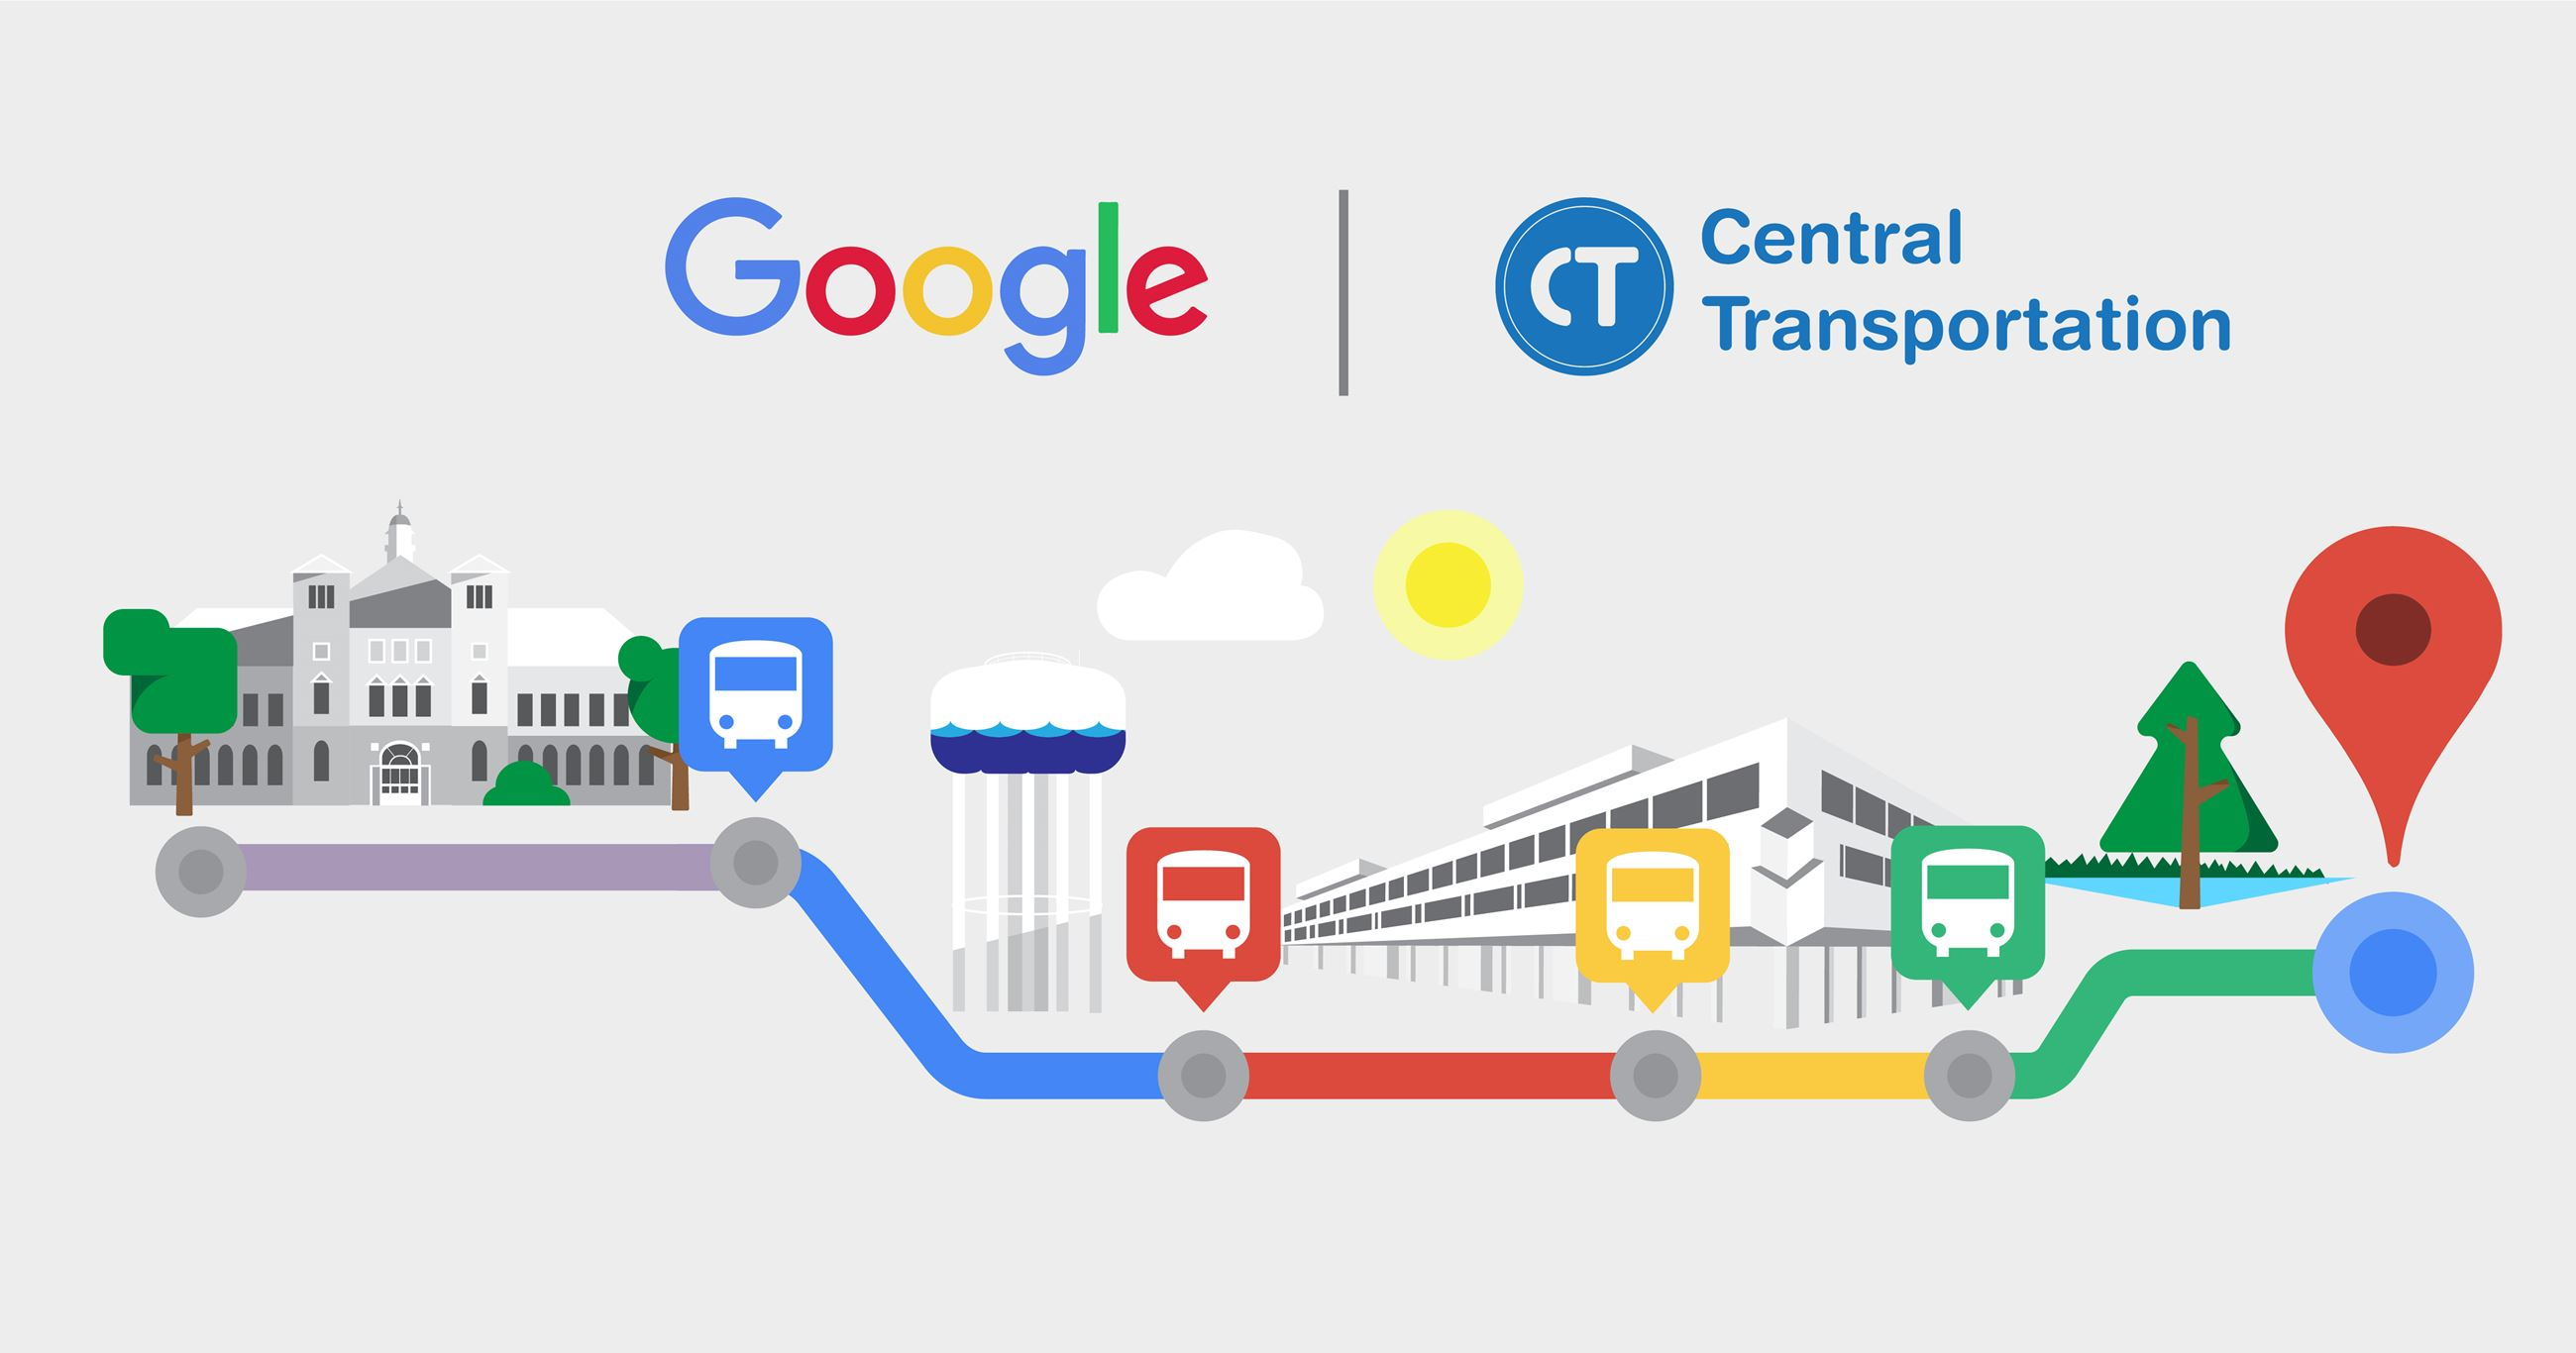 Central Transportation Google Maps